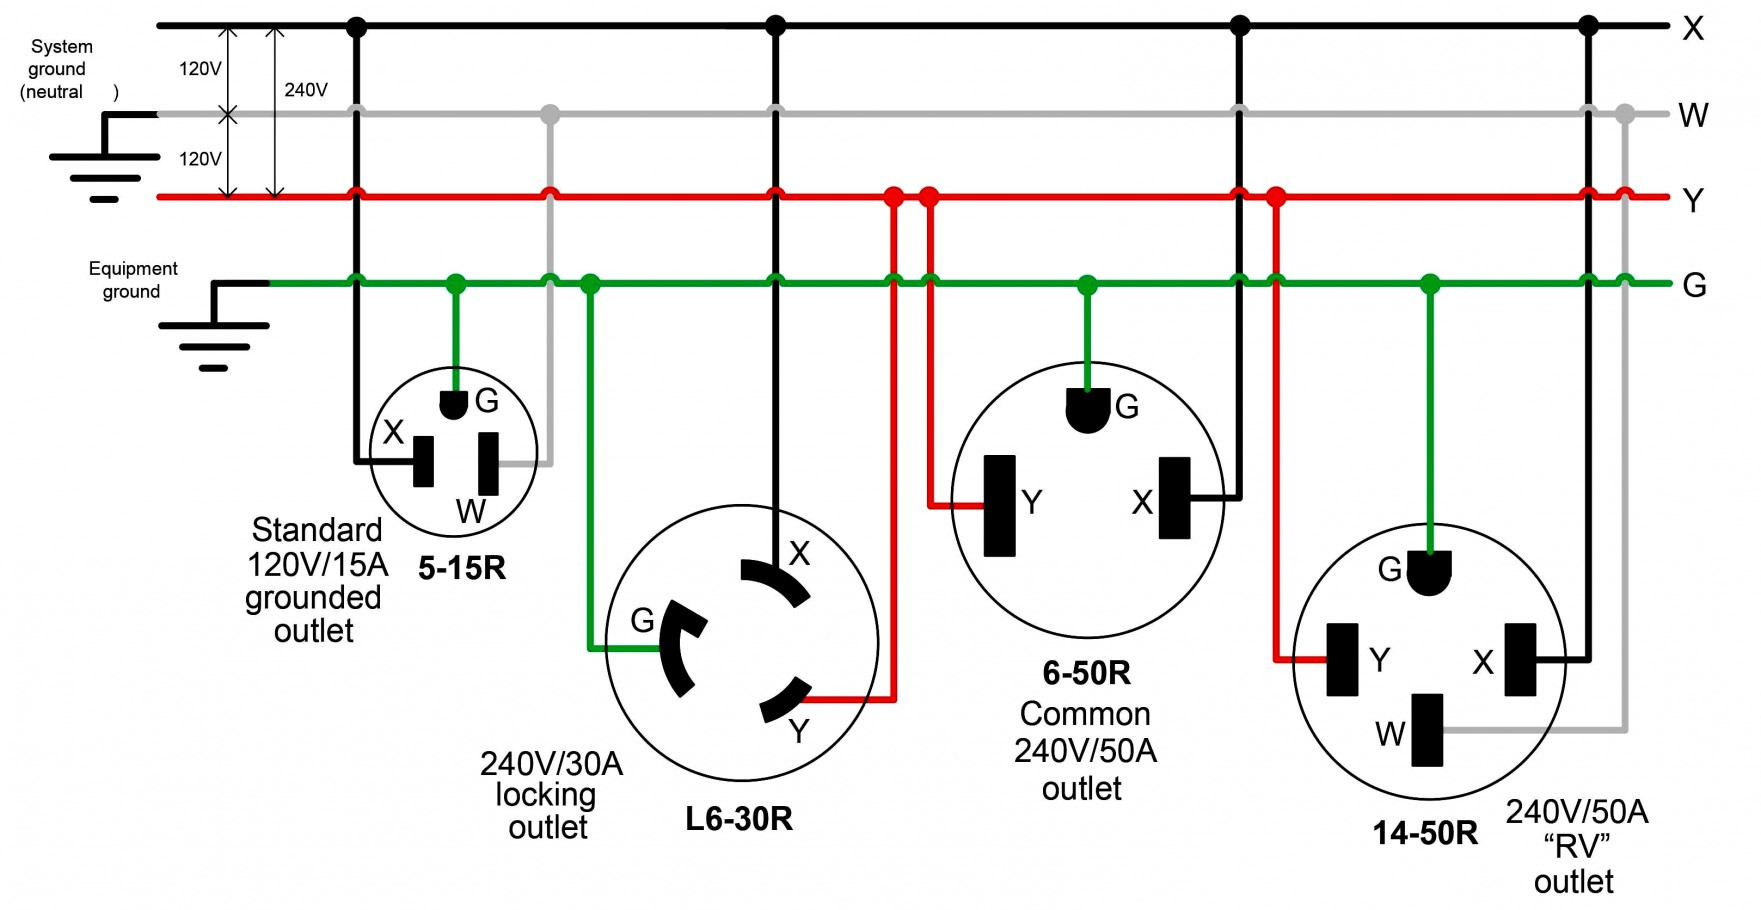 A 4 Prong Stove Schematic Wiring Diagram - Today Wiring Diagram - 7 Pin To 4 Pin Trailer Wiring Diagram